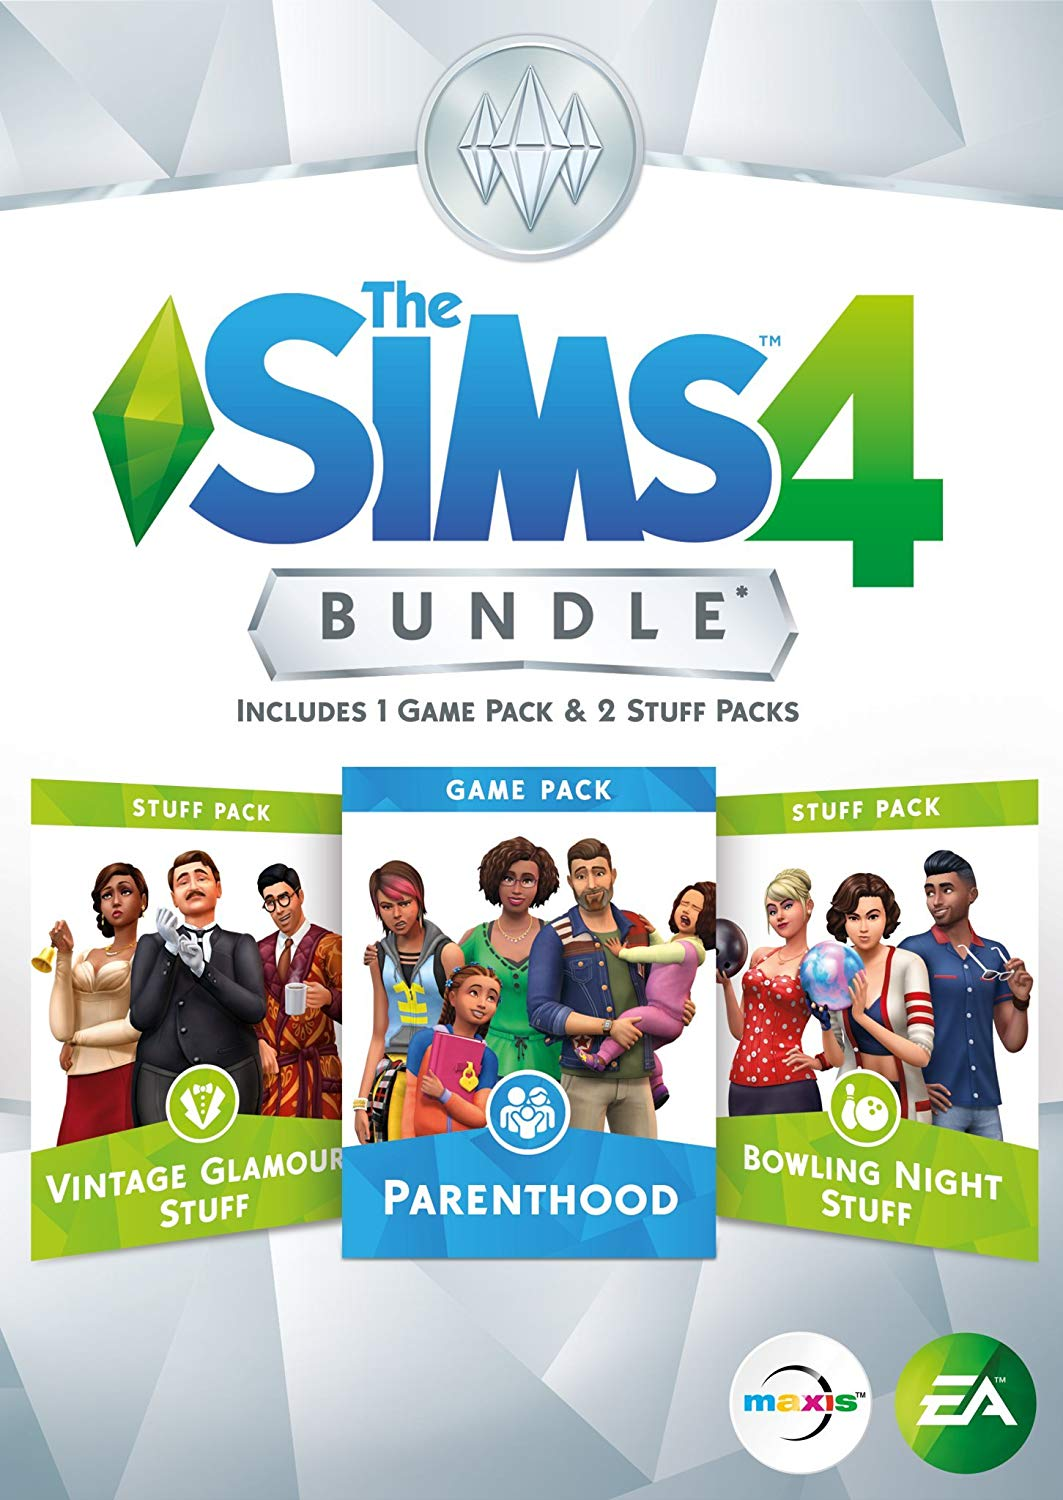 PC THE SIMS 4 BUNDLE PACK 9 PARENTHOOD (DIGITAL CODE ONLY)